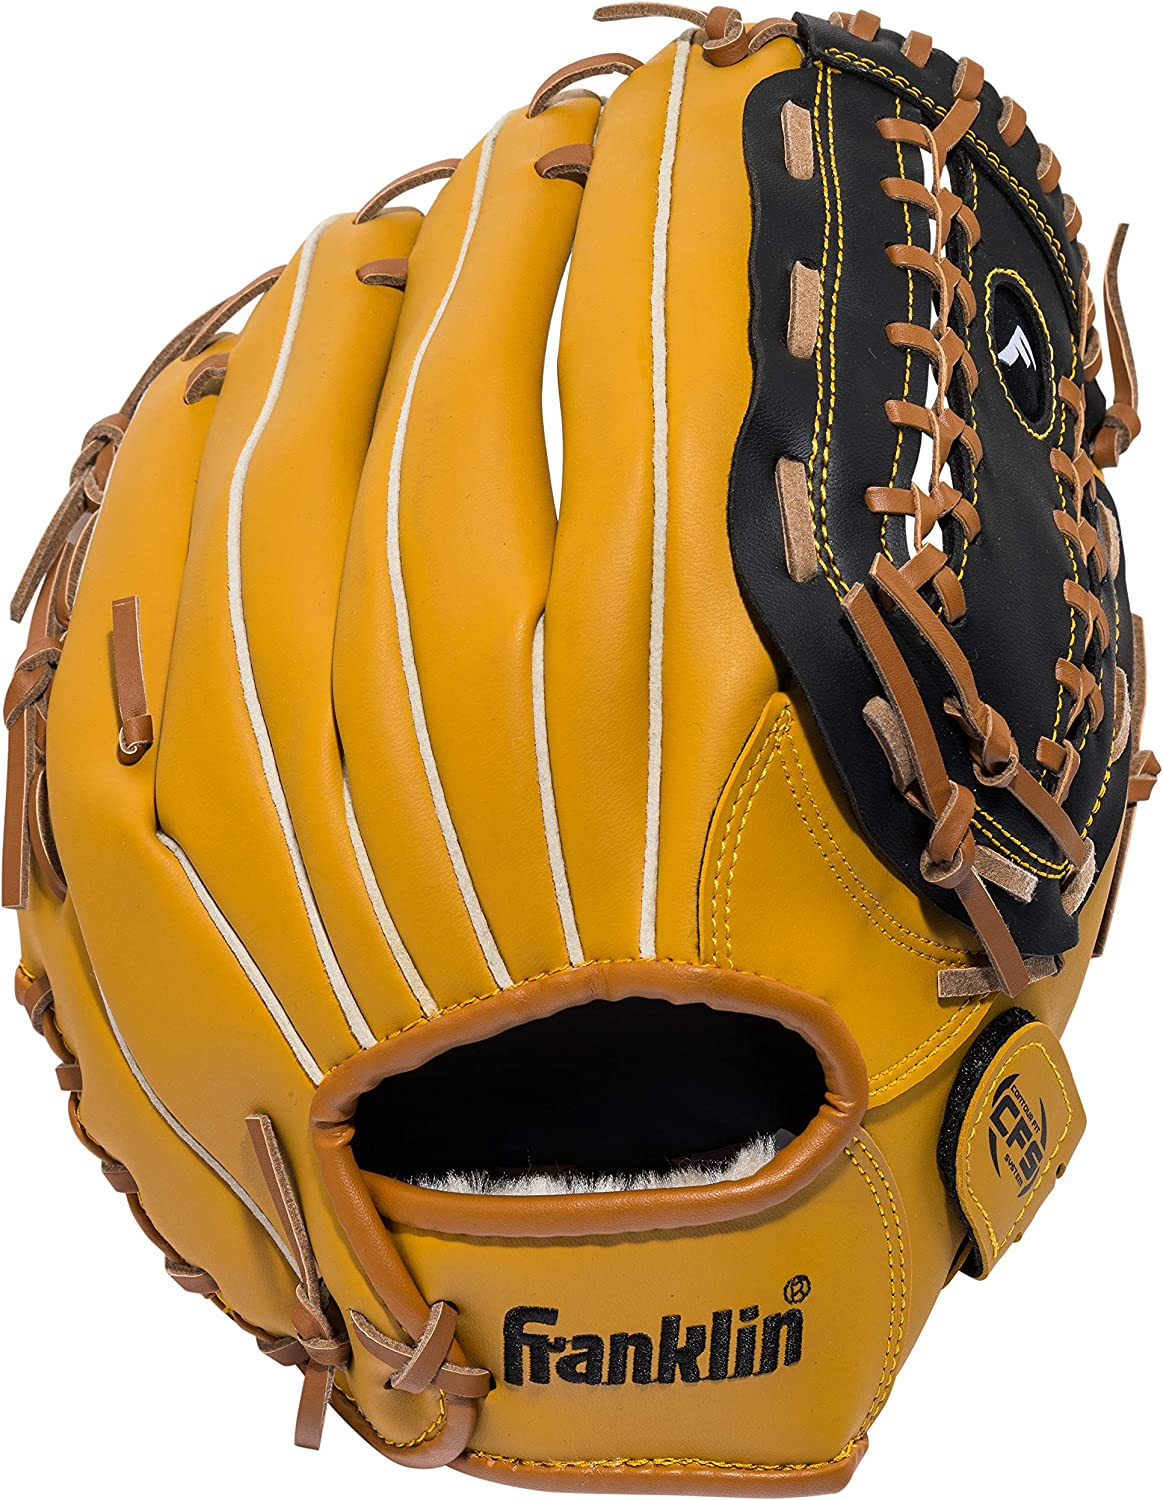 Franklin Sports Baseball and Softball Glove - F...